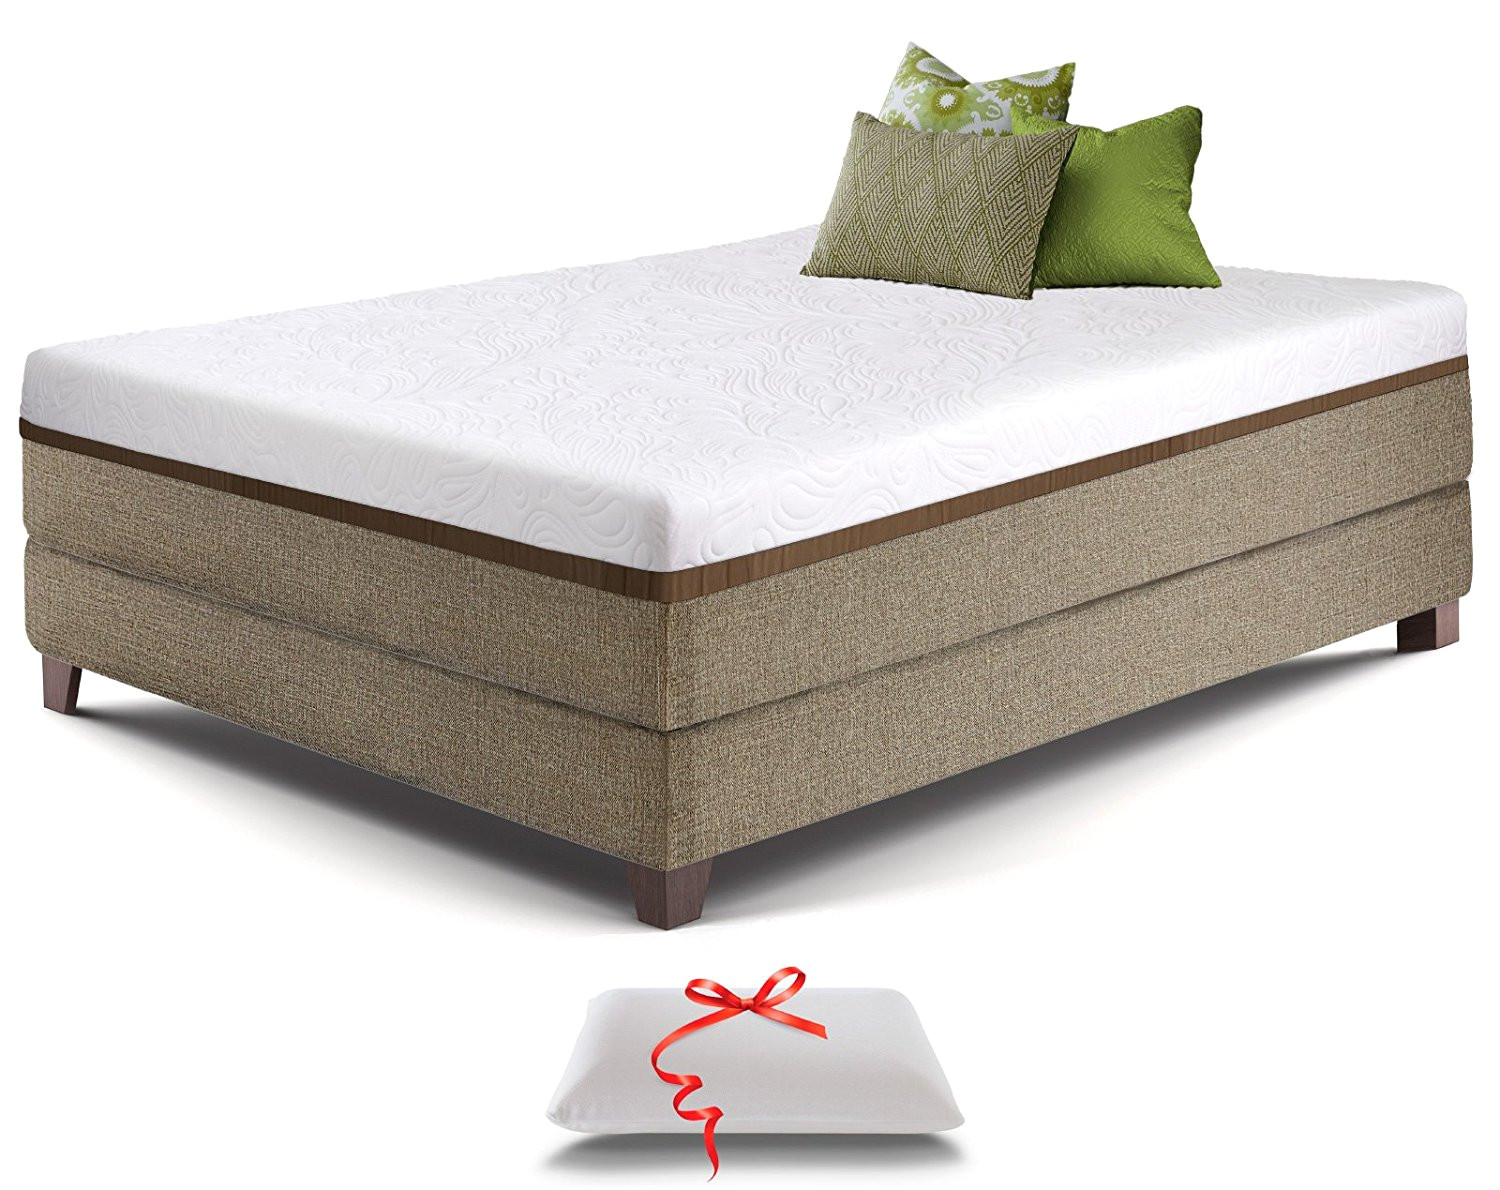 Bamboo Mattress Topper Review Snuggle Home 2 Blended Gel Memory Foam Mattress Topper Reviews